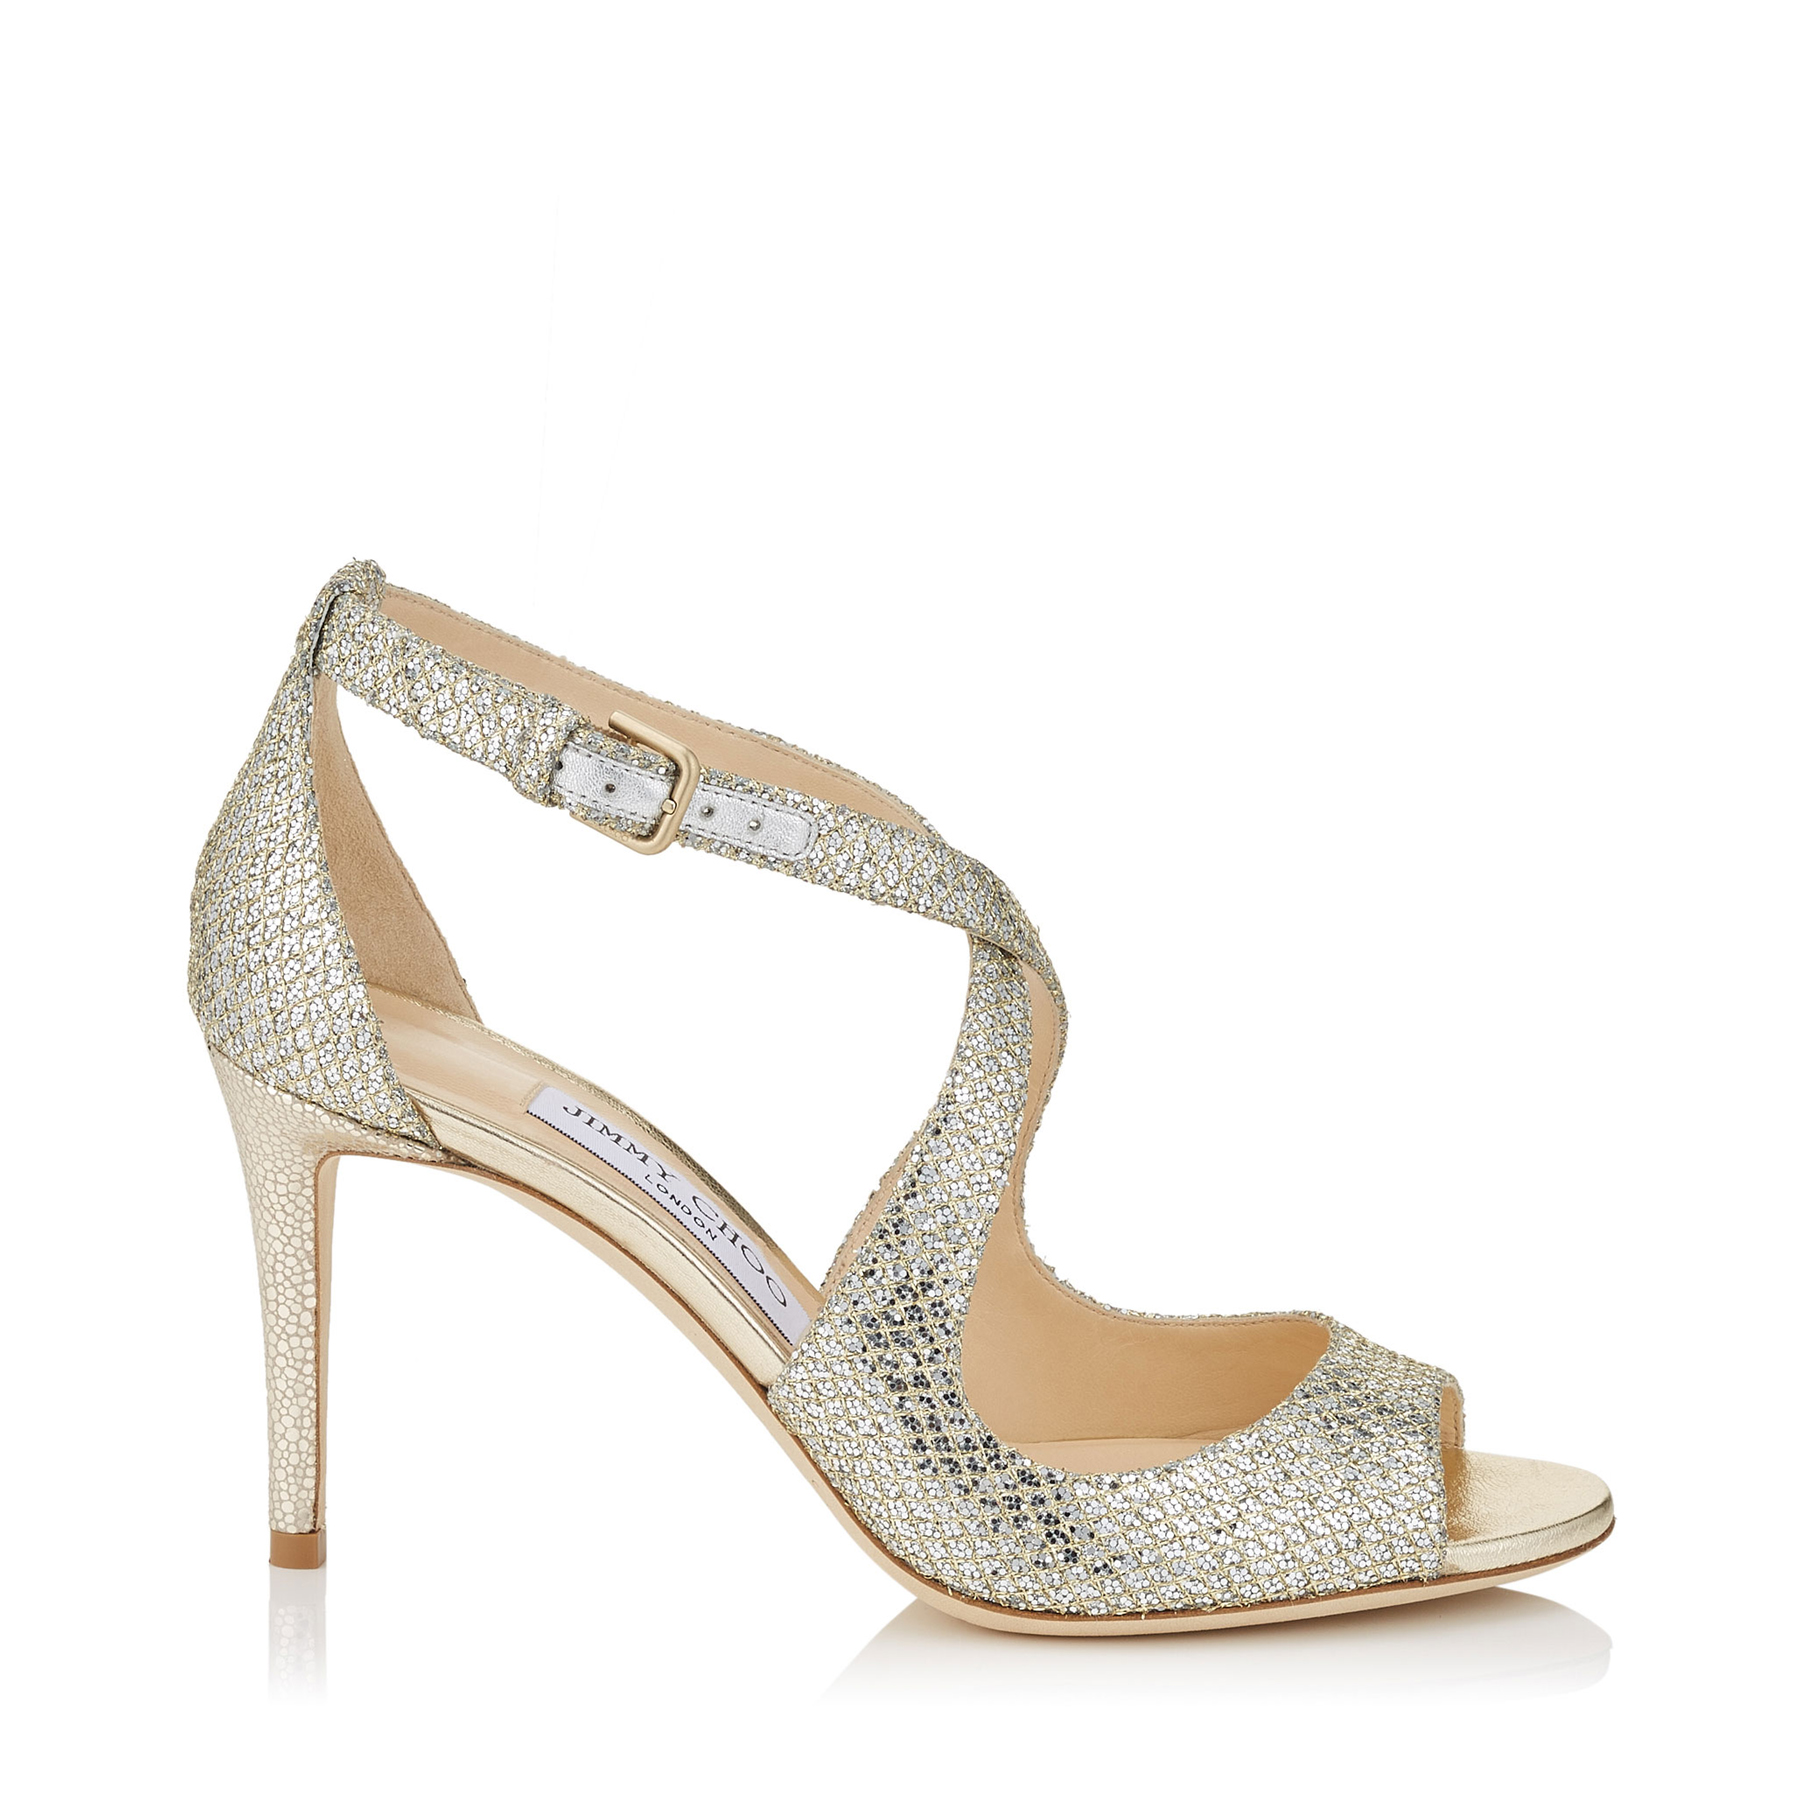 EMILY 85 Champagne Glitter Fabric Sandals by Jimmy Choo